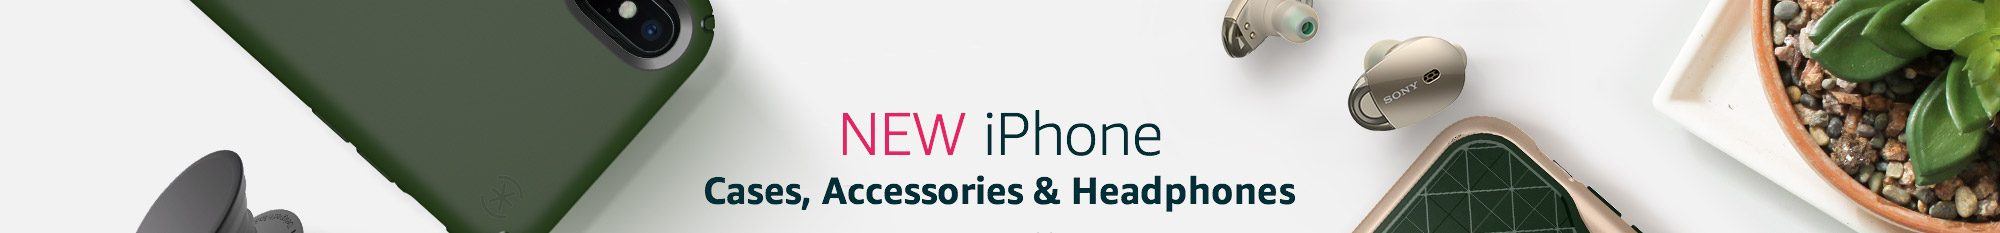 Cases, Accessories, and Headphones for the iPhone X